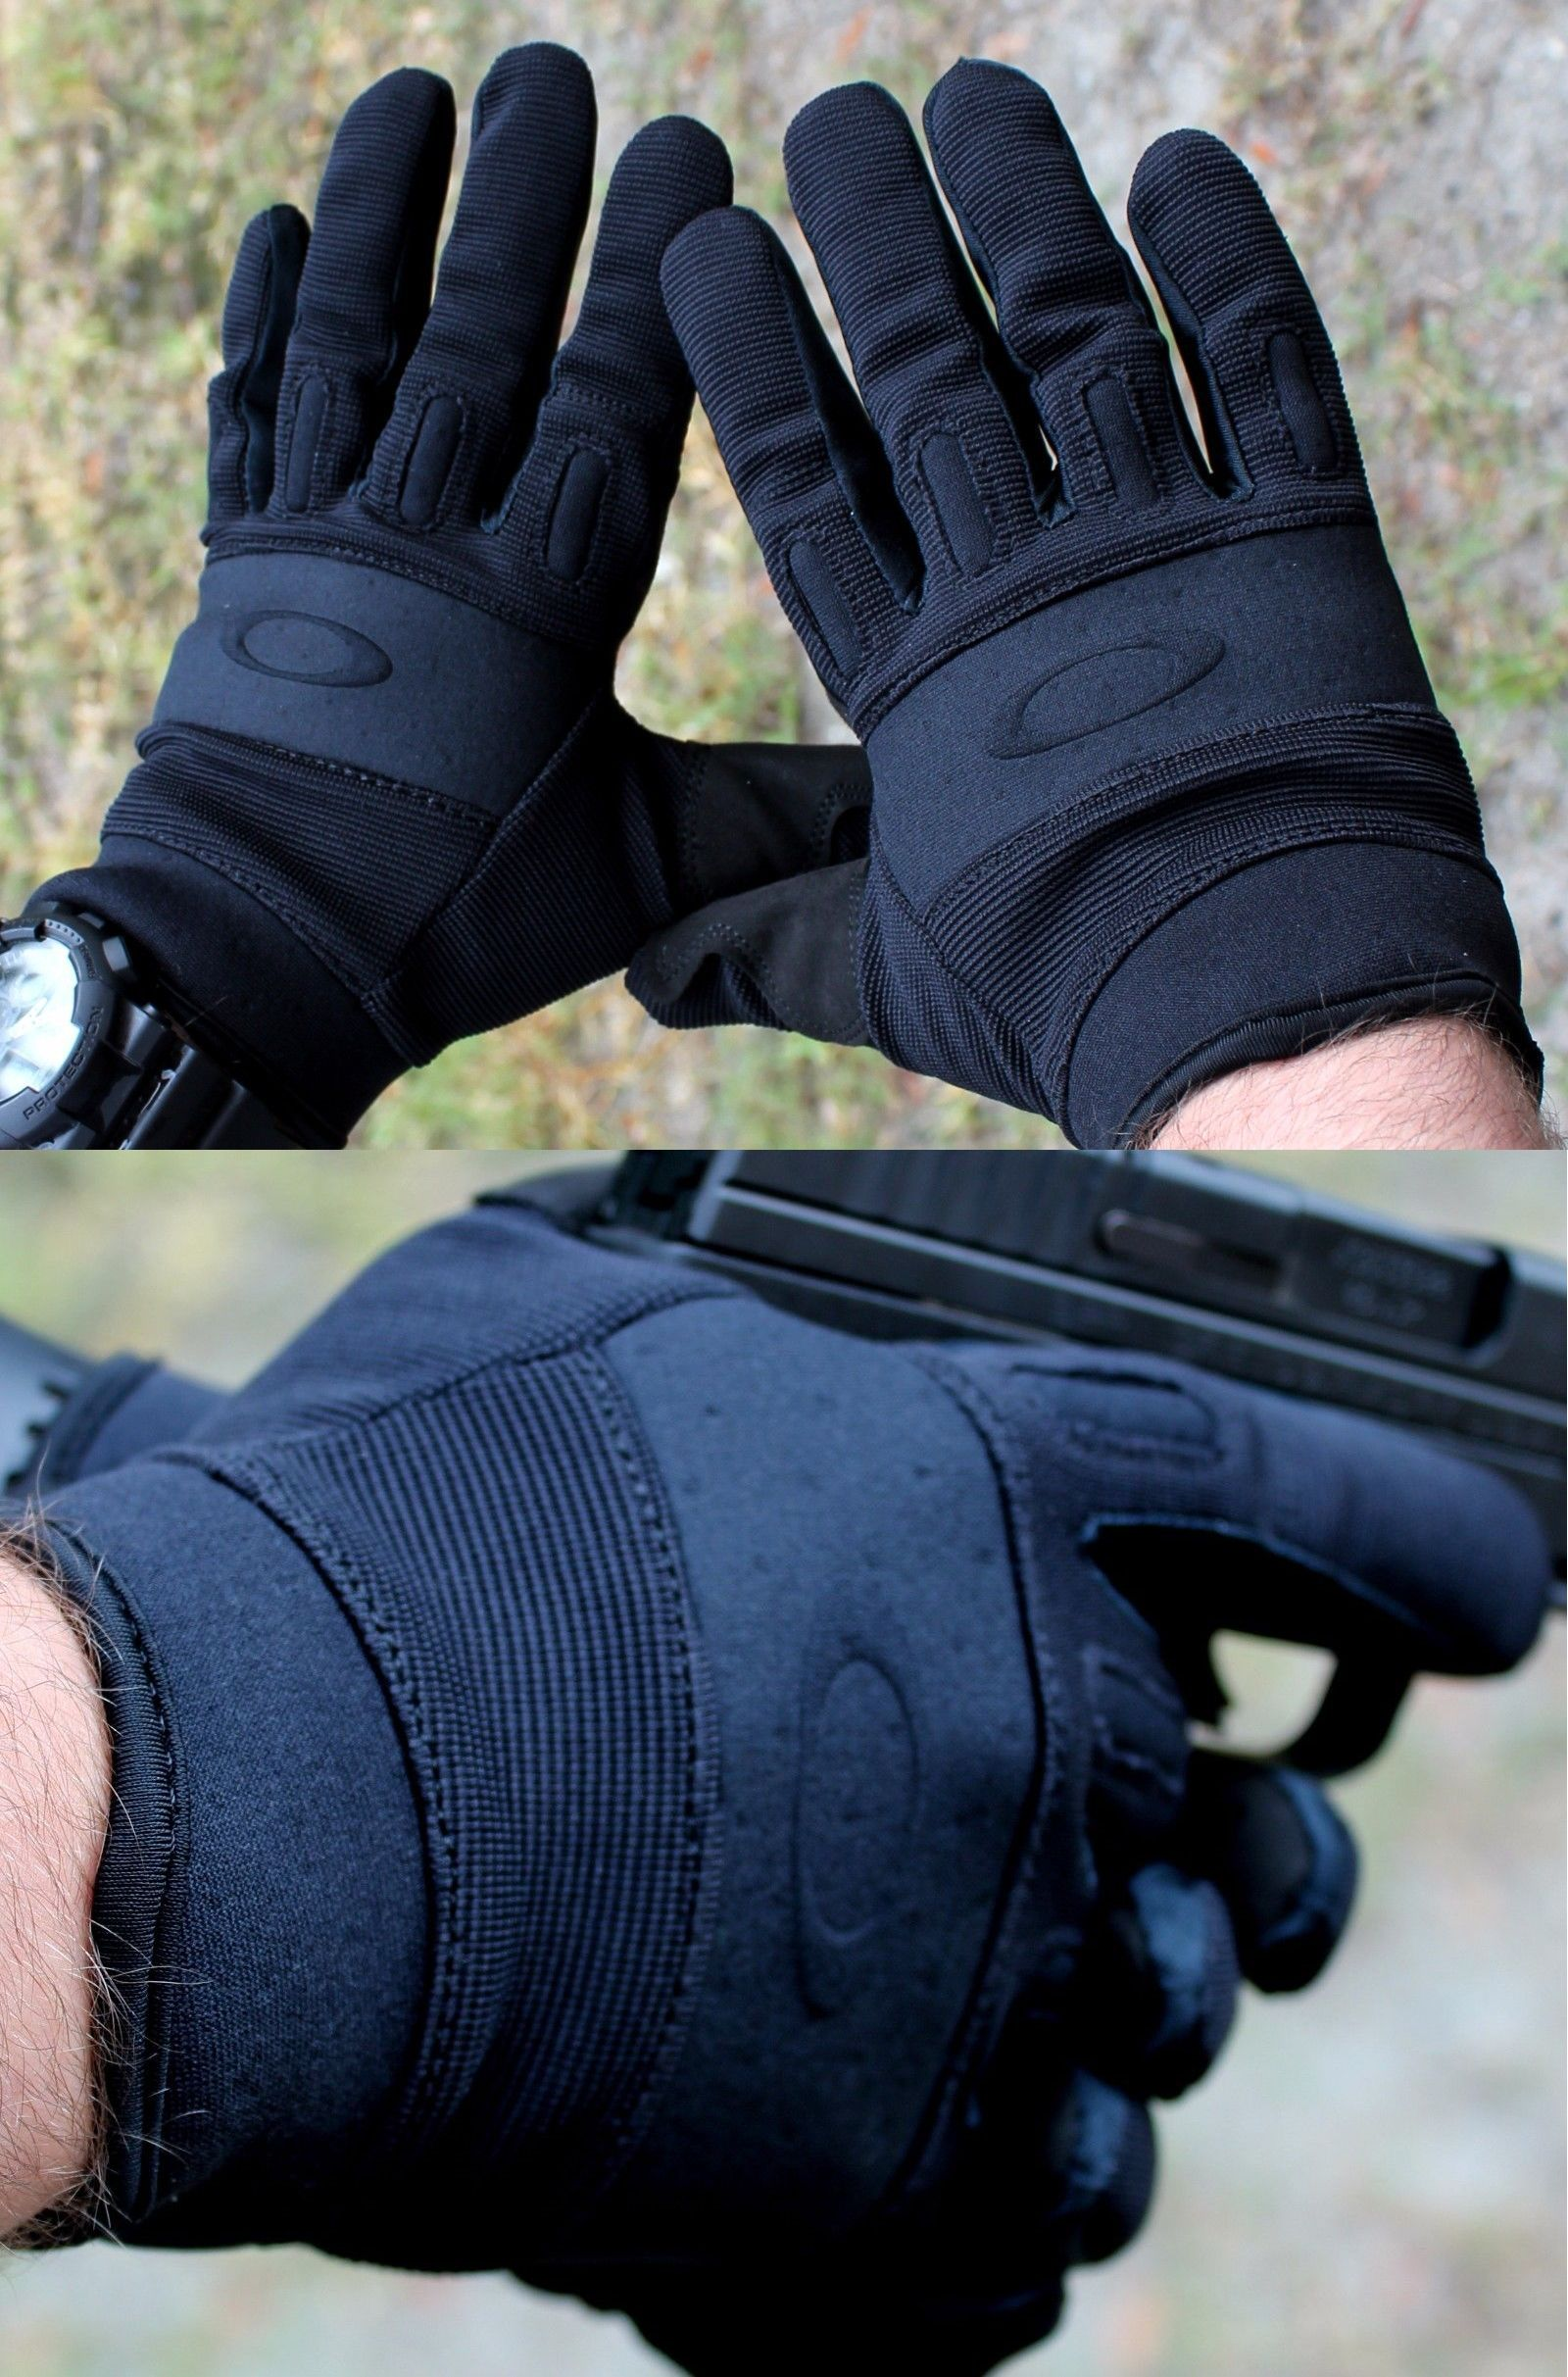 cdd49b4111ddfc Tactical Gloves 177898  Oakley Si Standard Issue Lightweight Men S Black  Shooting Range Tactical Gloves